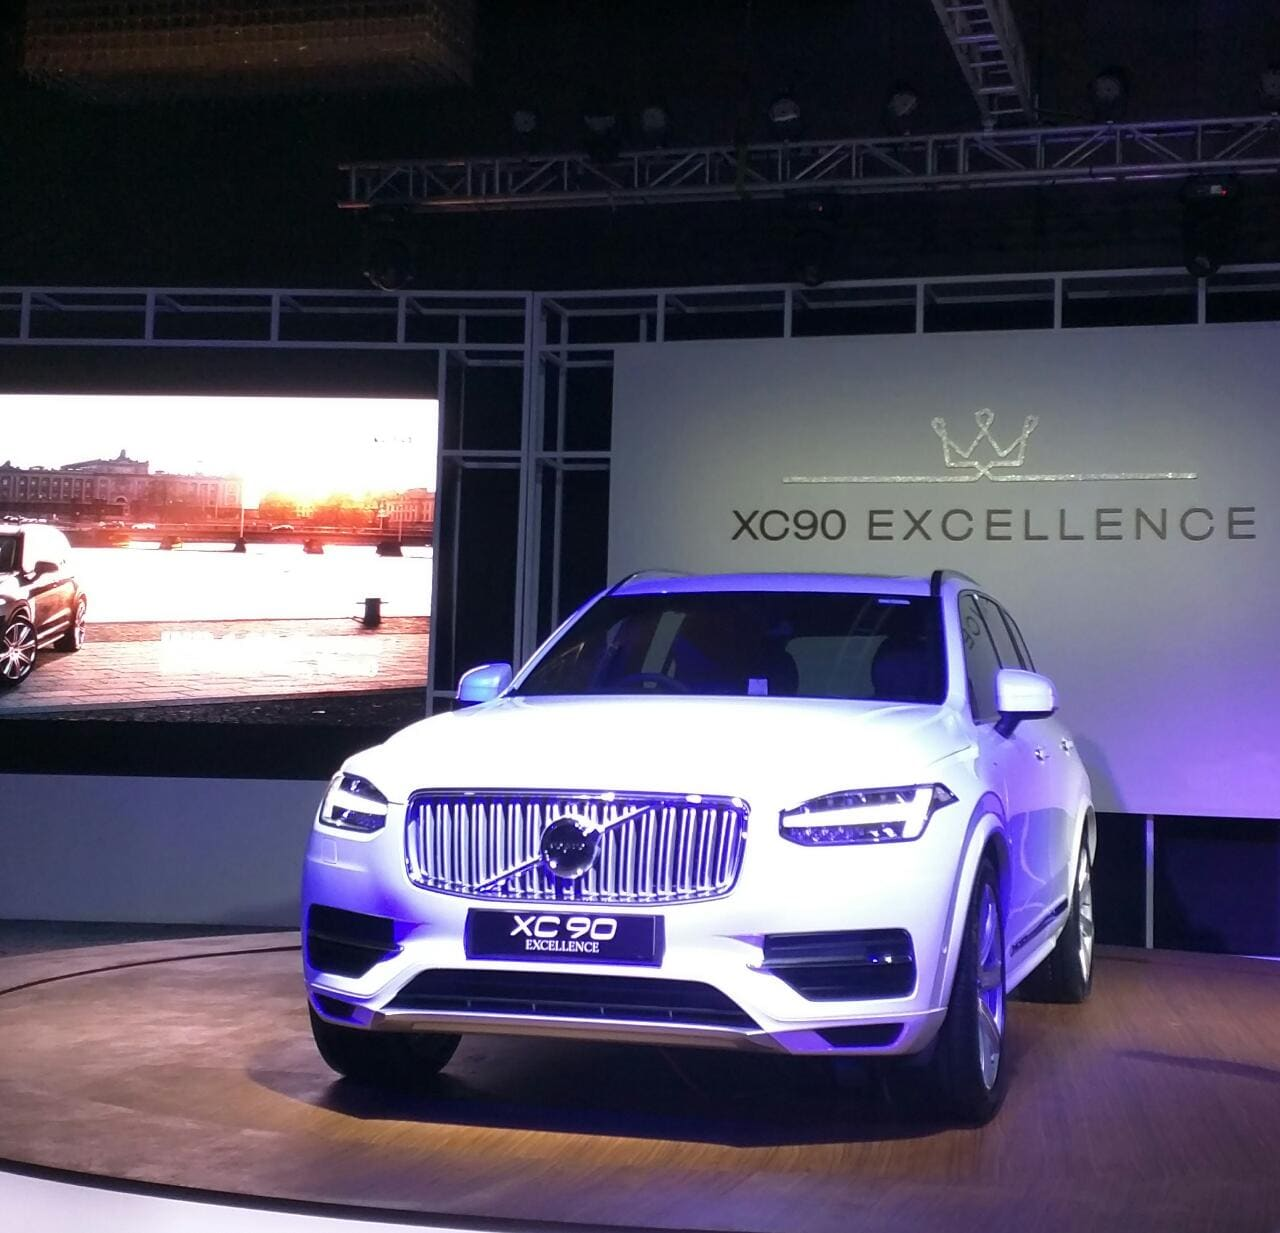 Volvo Xc90 Price: Volvo XC90 Excellence T8 Plug-In Hybrid Launch: Highlights